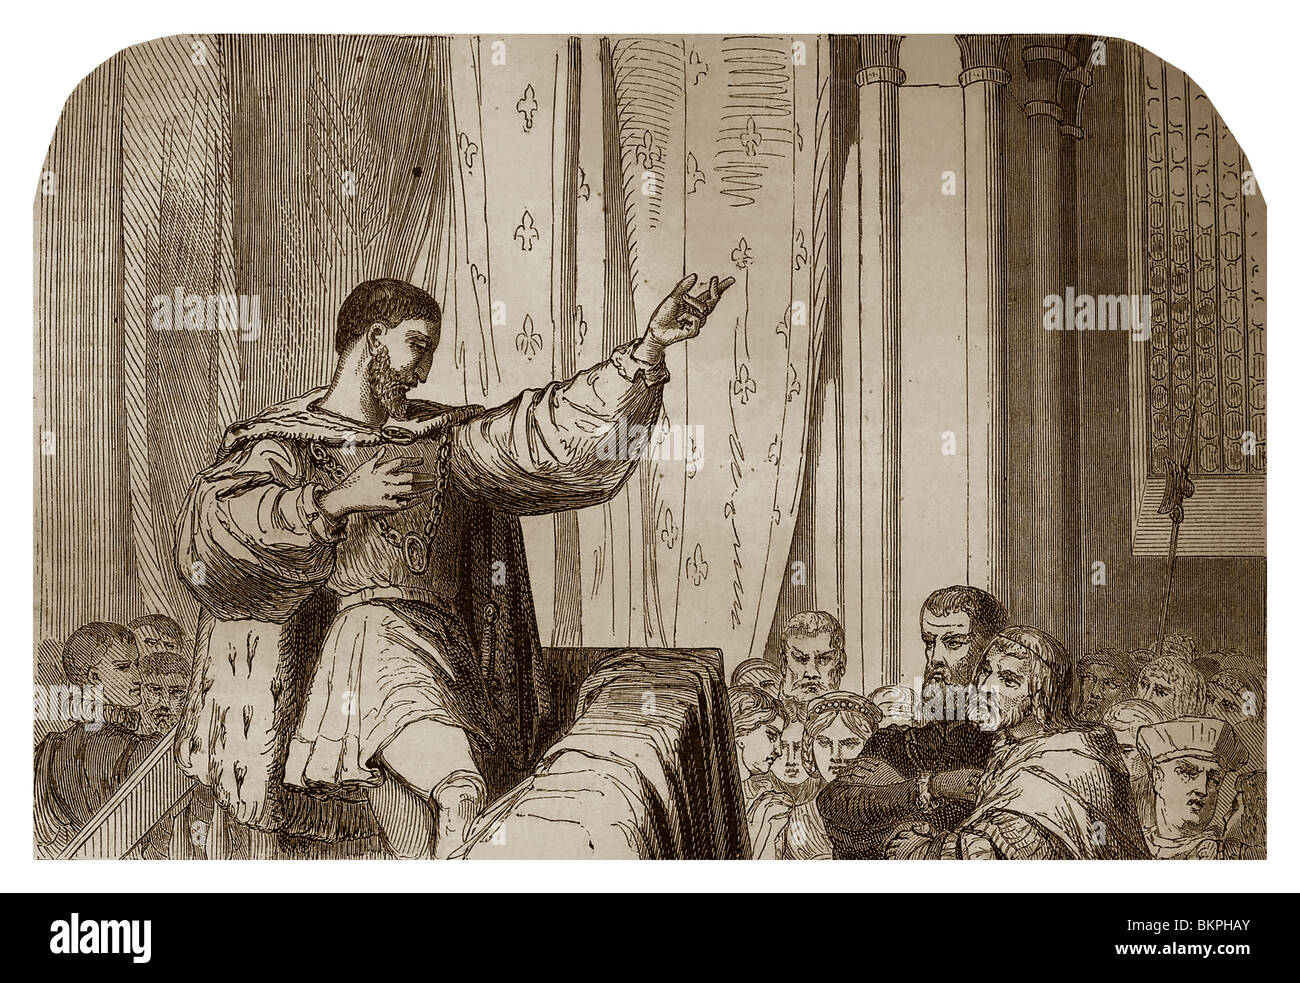 On 21st January 1535, in Paris, in the bishop's palace, Francis I of France, preaching the persecution of Protestants. - Stock Image